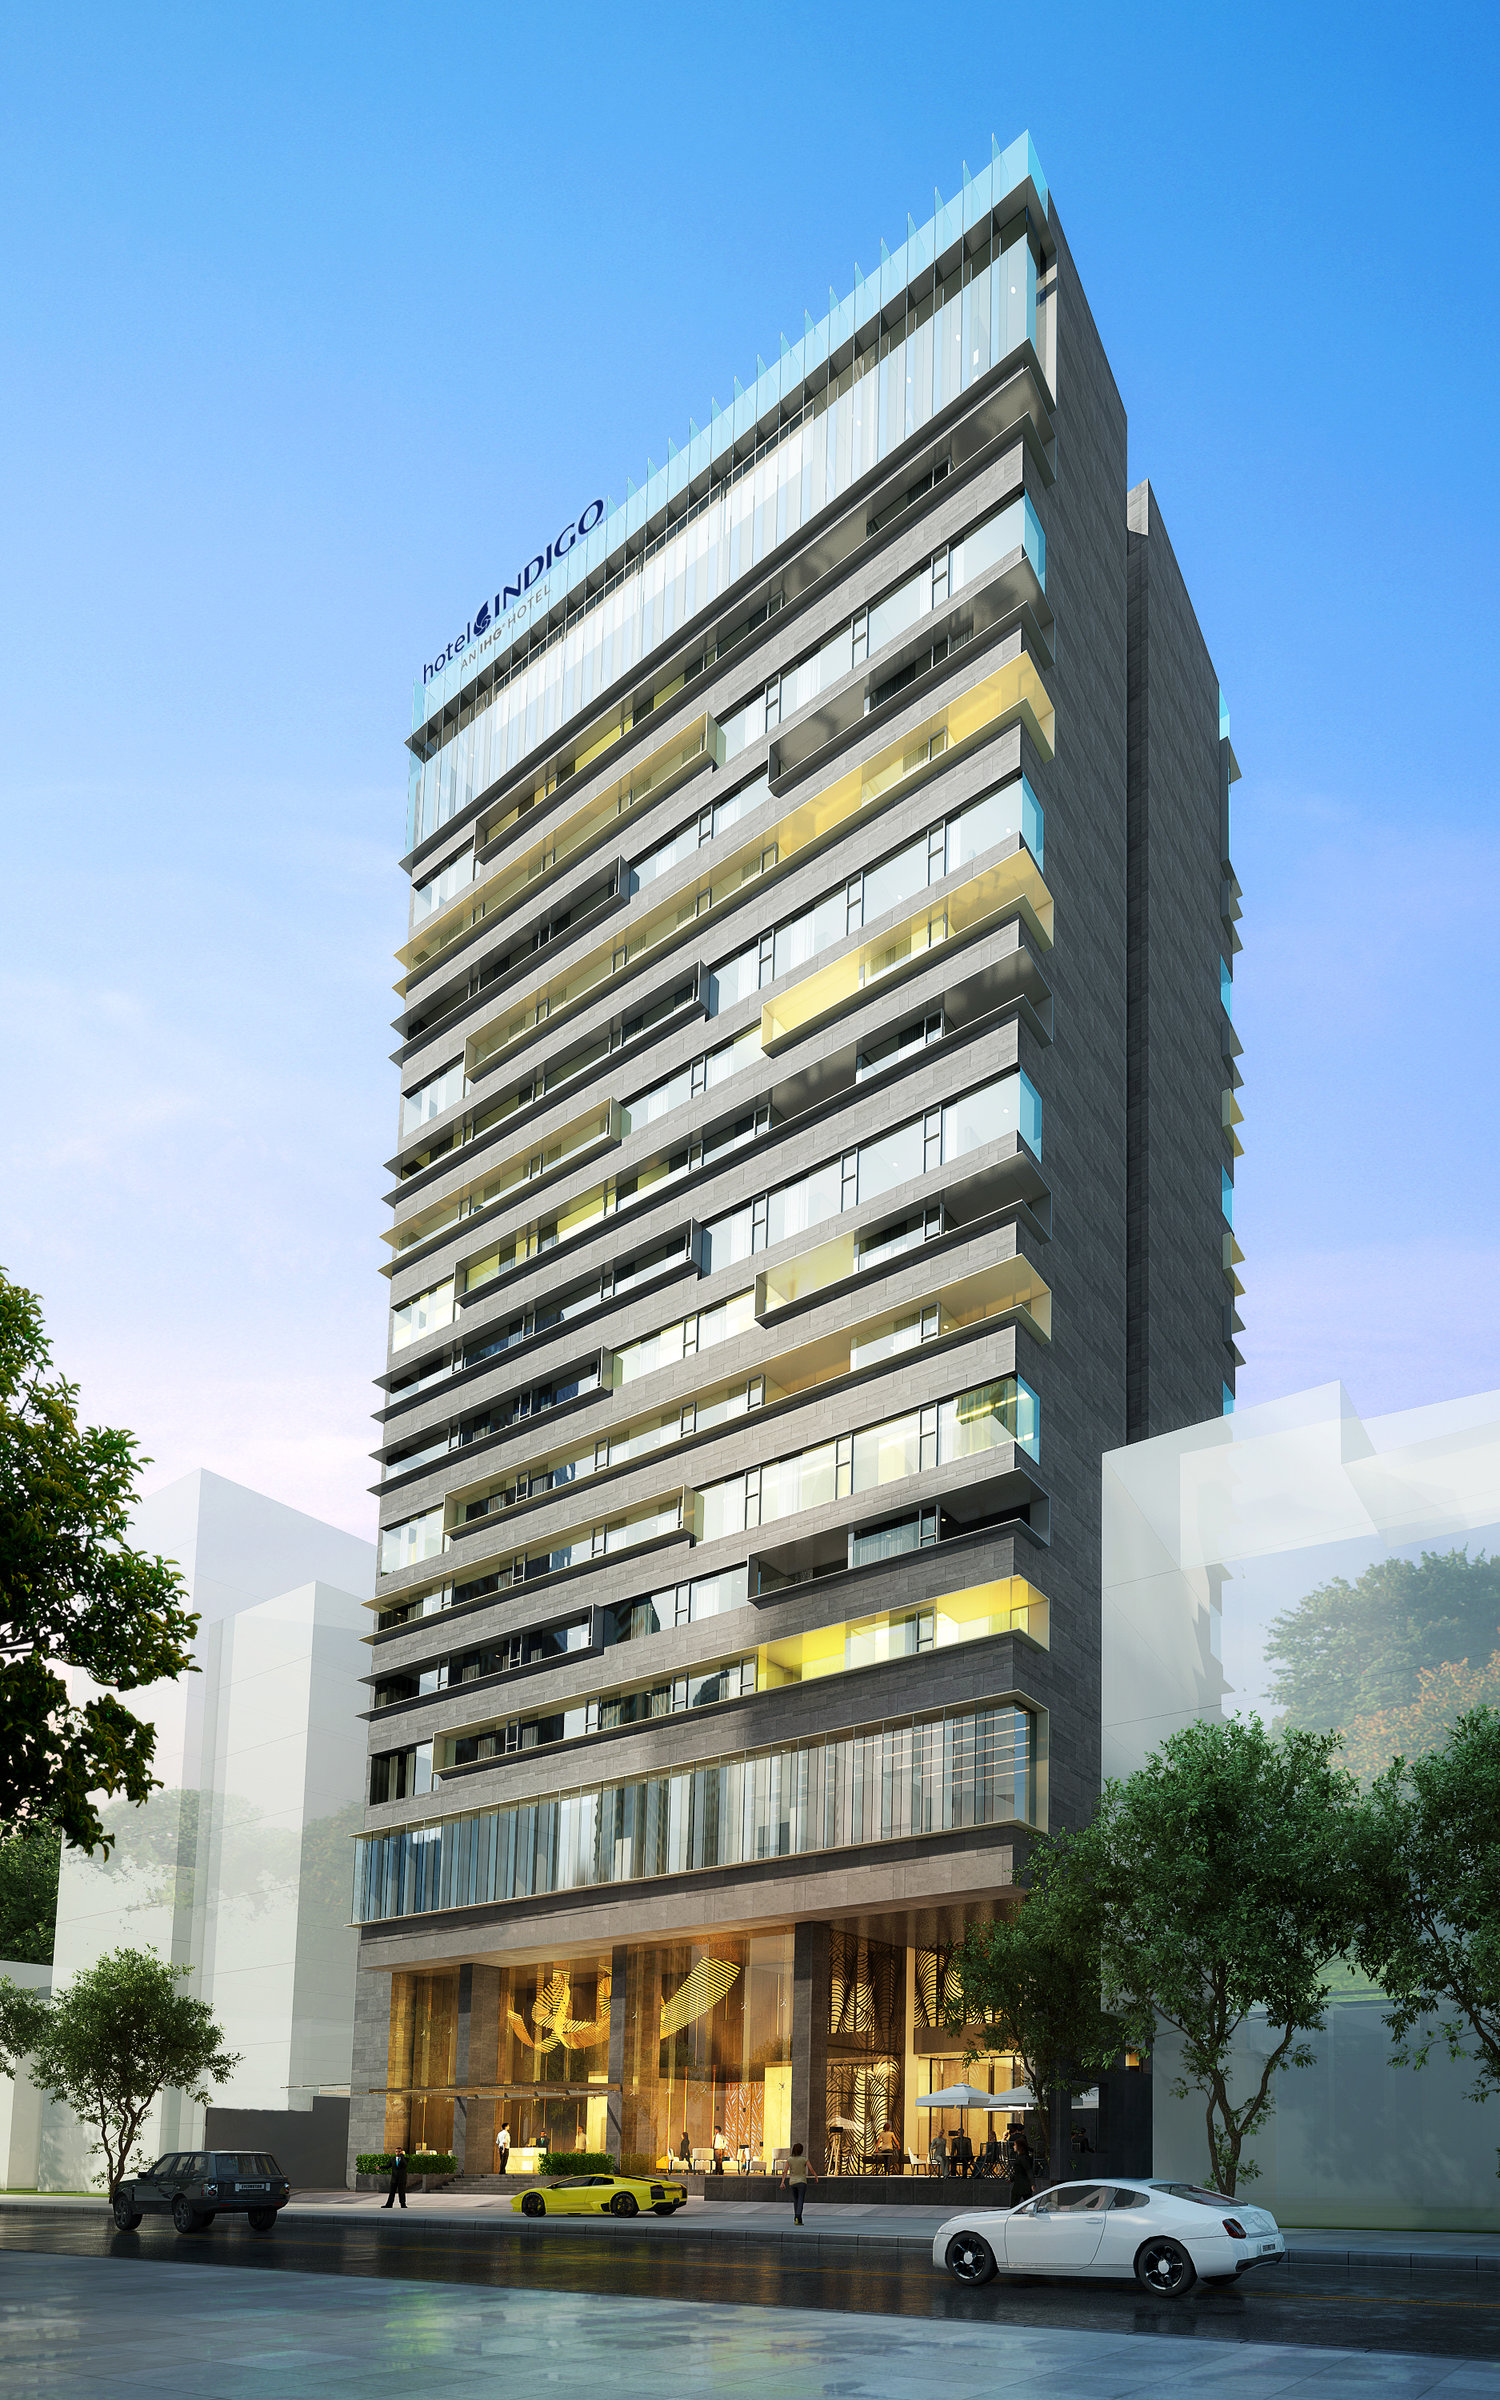 Hotel Indigo to debut in Ho Chi Minh City, Vietnam - Hotel Indigo Saigon The City